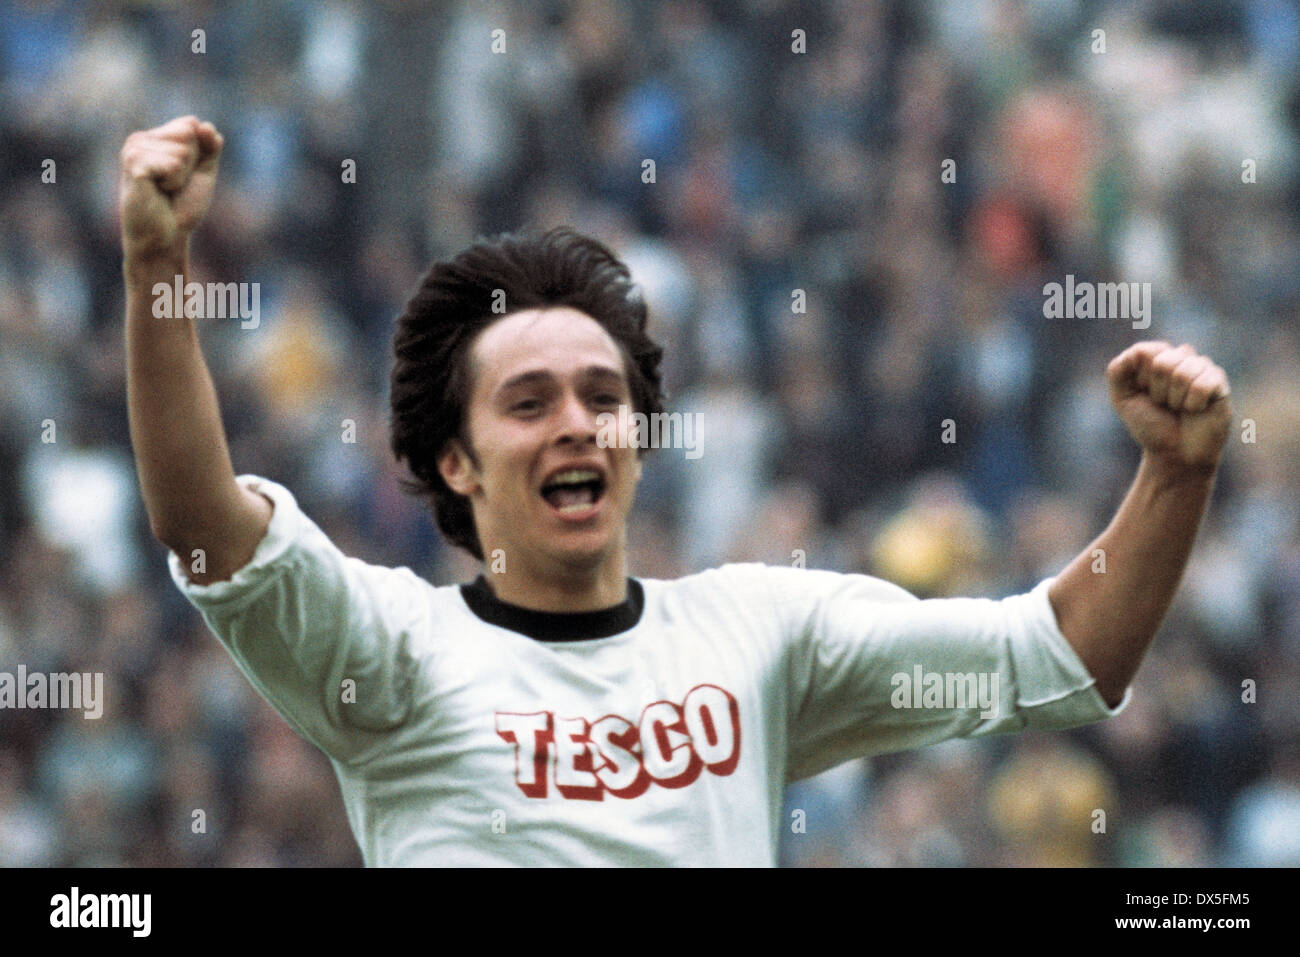 football, 2. Bundesliga Nord, 1974/1975, Stadium am Uhlenkrug, ETB Schwarz Weiss Essen versus FC Bayer 05 Uerdingen 1:2, goal scorer Holger Trimhold (ETB) rejoicing at the equaliser for 1:1 - Stock Image